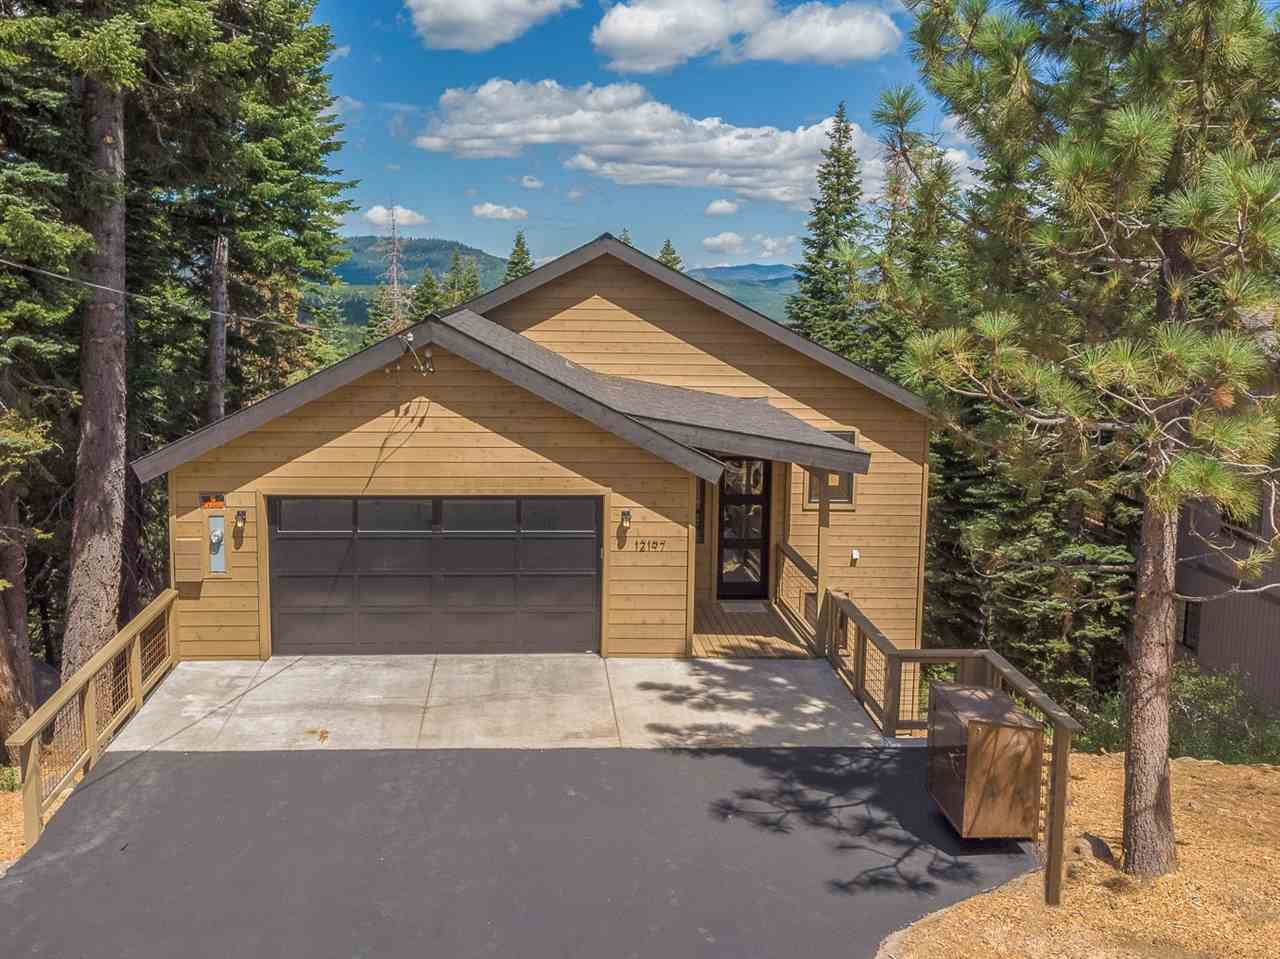 Single Family Home for Active at 12197 Skislope Way 12197 Skislope Way Truckee, California 96161 United States